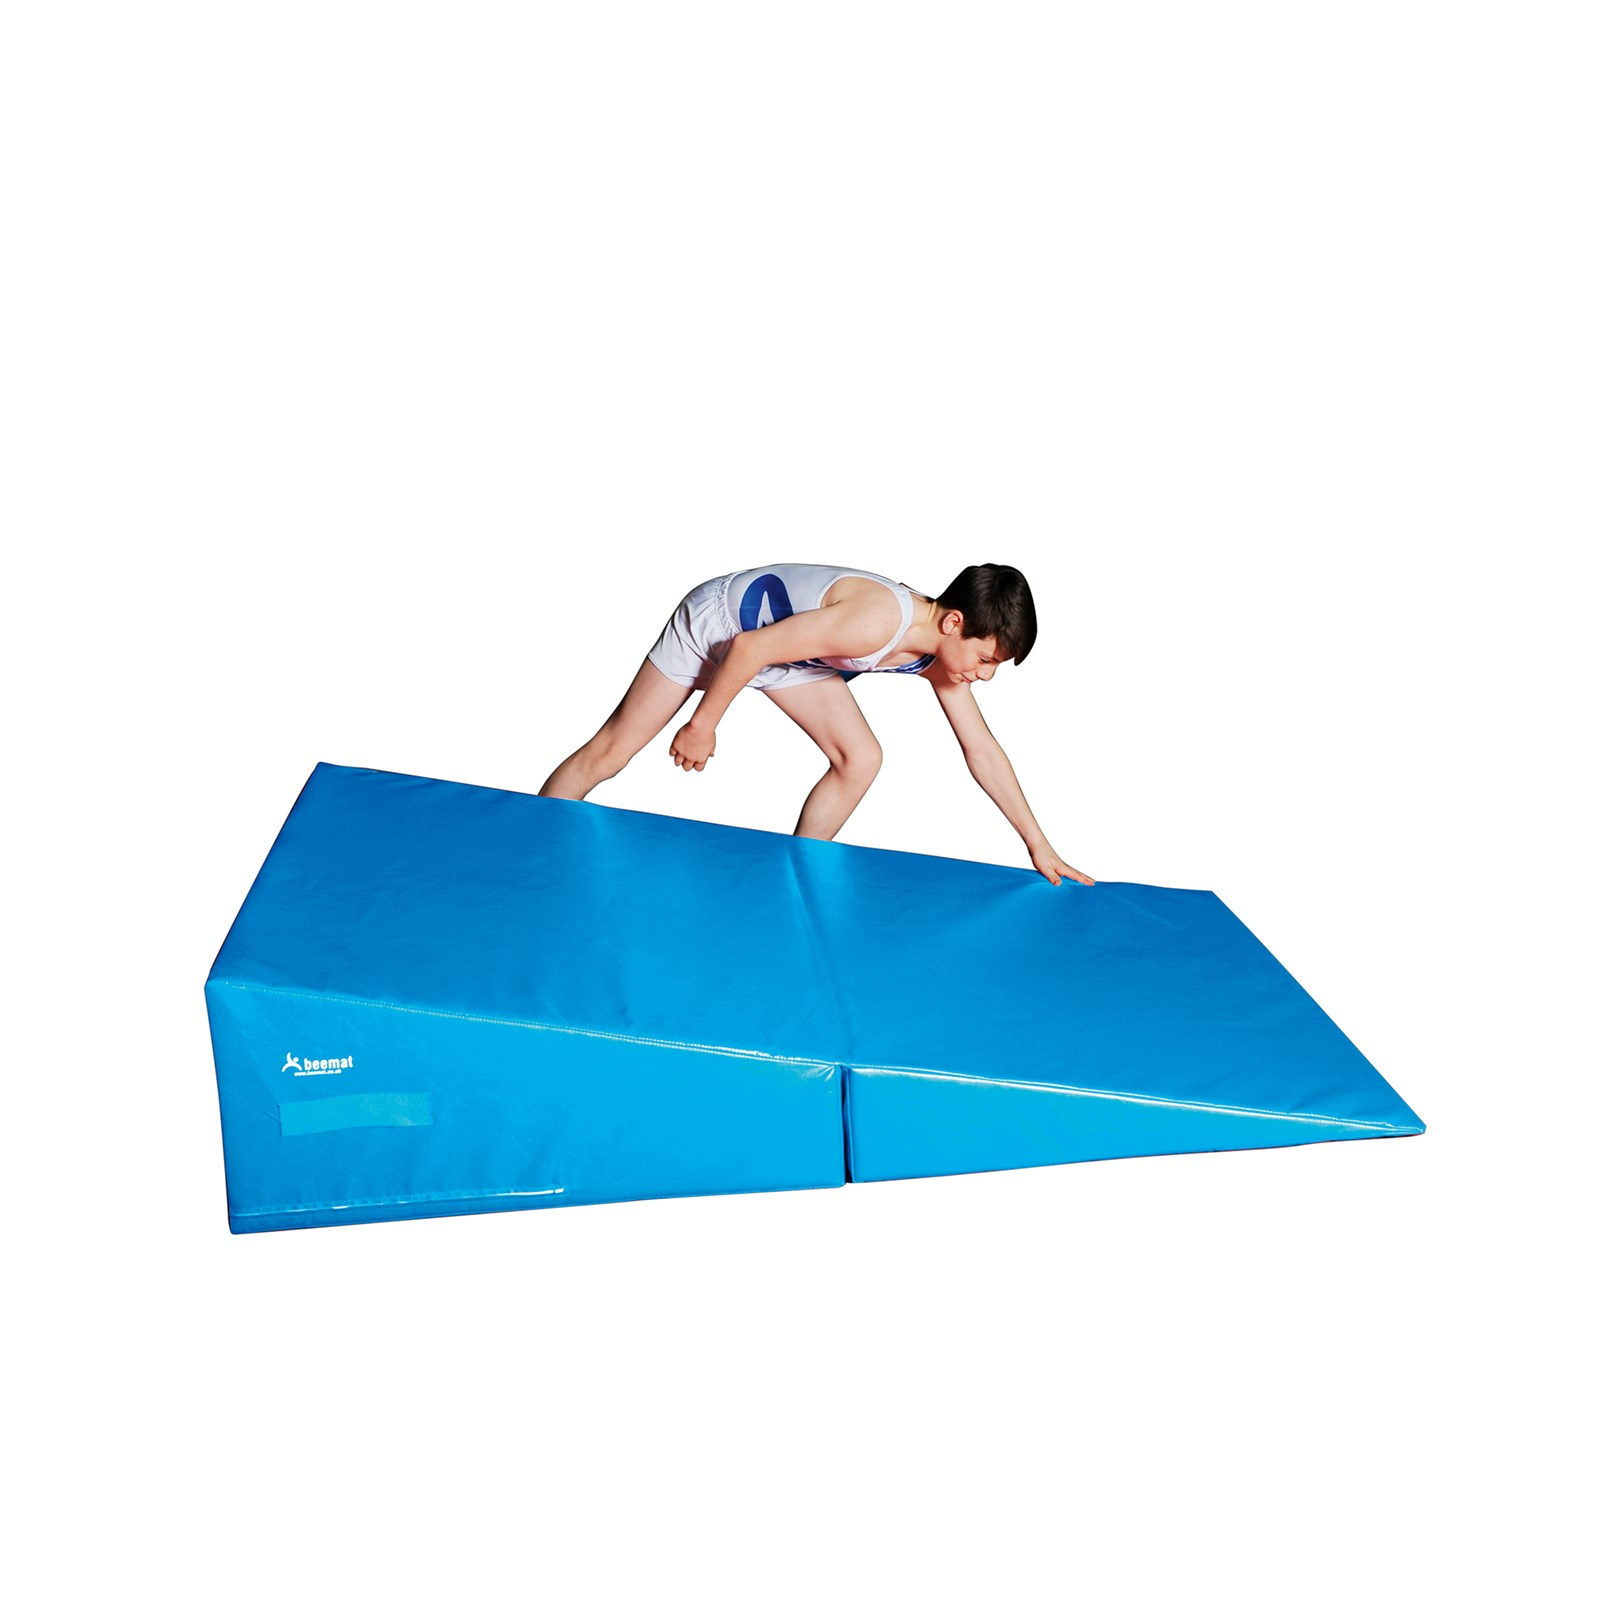 costway ip incline exercise gymnastics mats ramp aerobics wedge tumbling sports gym mat